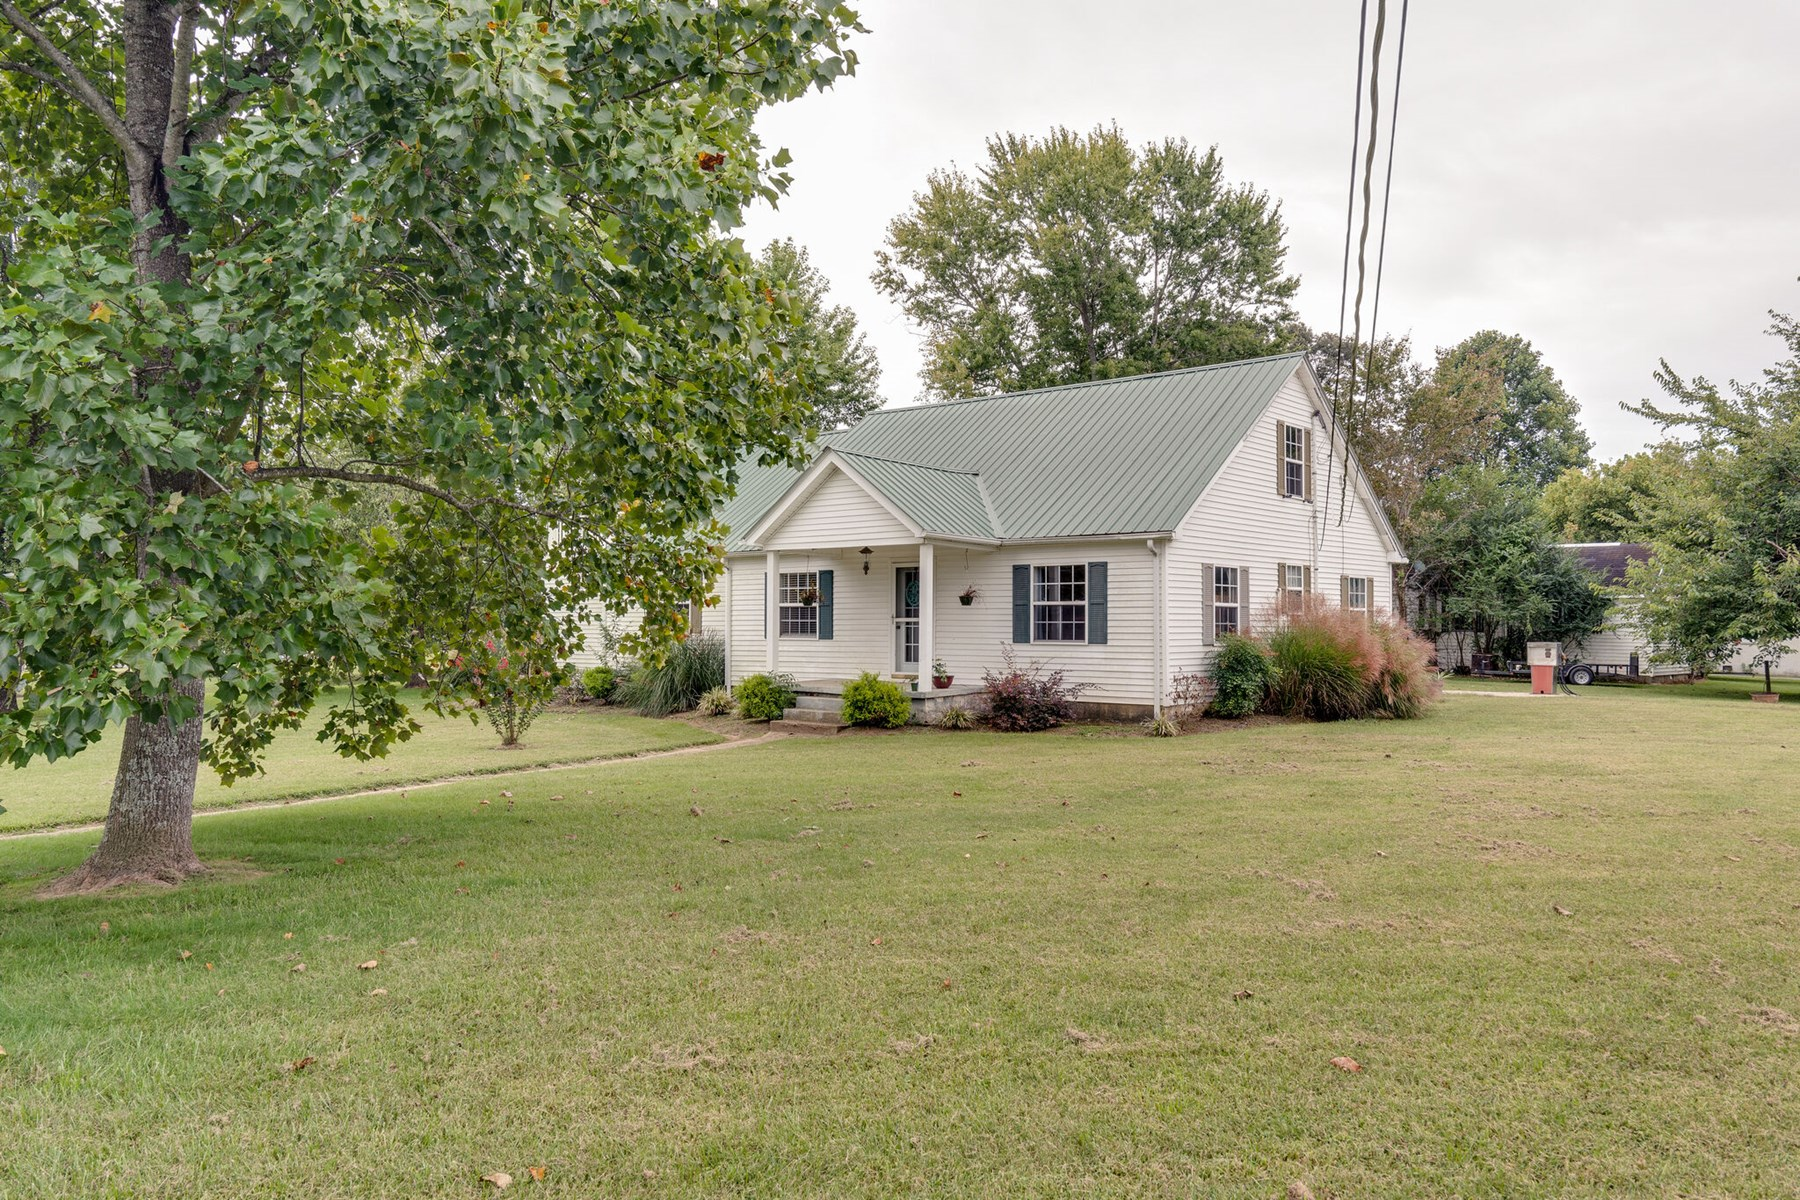 Home in Town for Sale on Corner Lot in Summertown, Tennessee